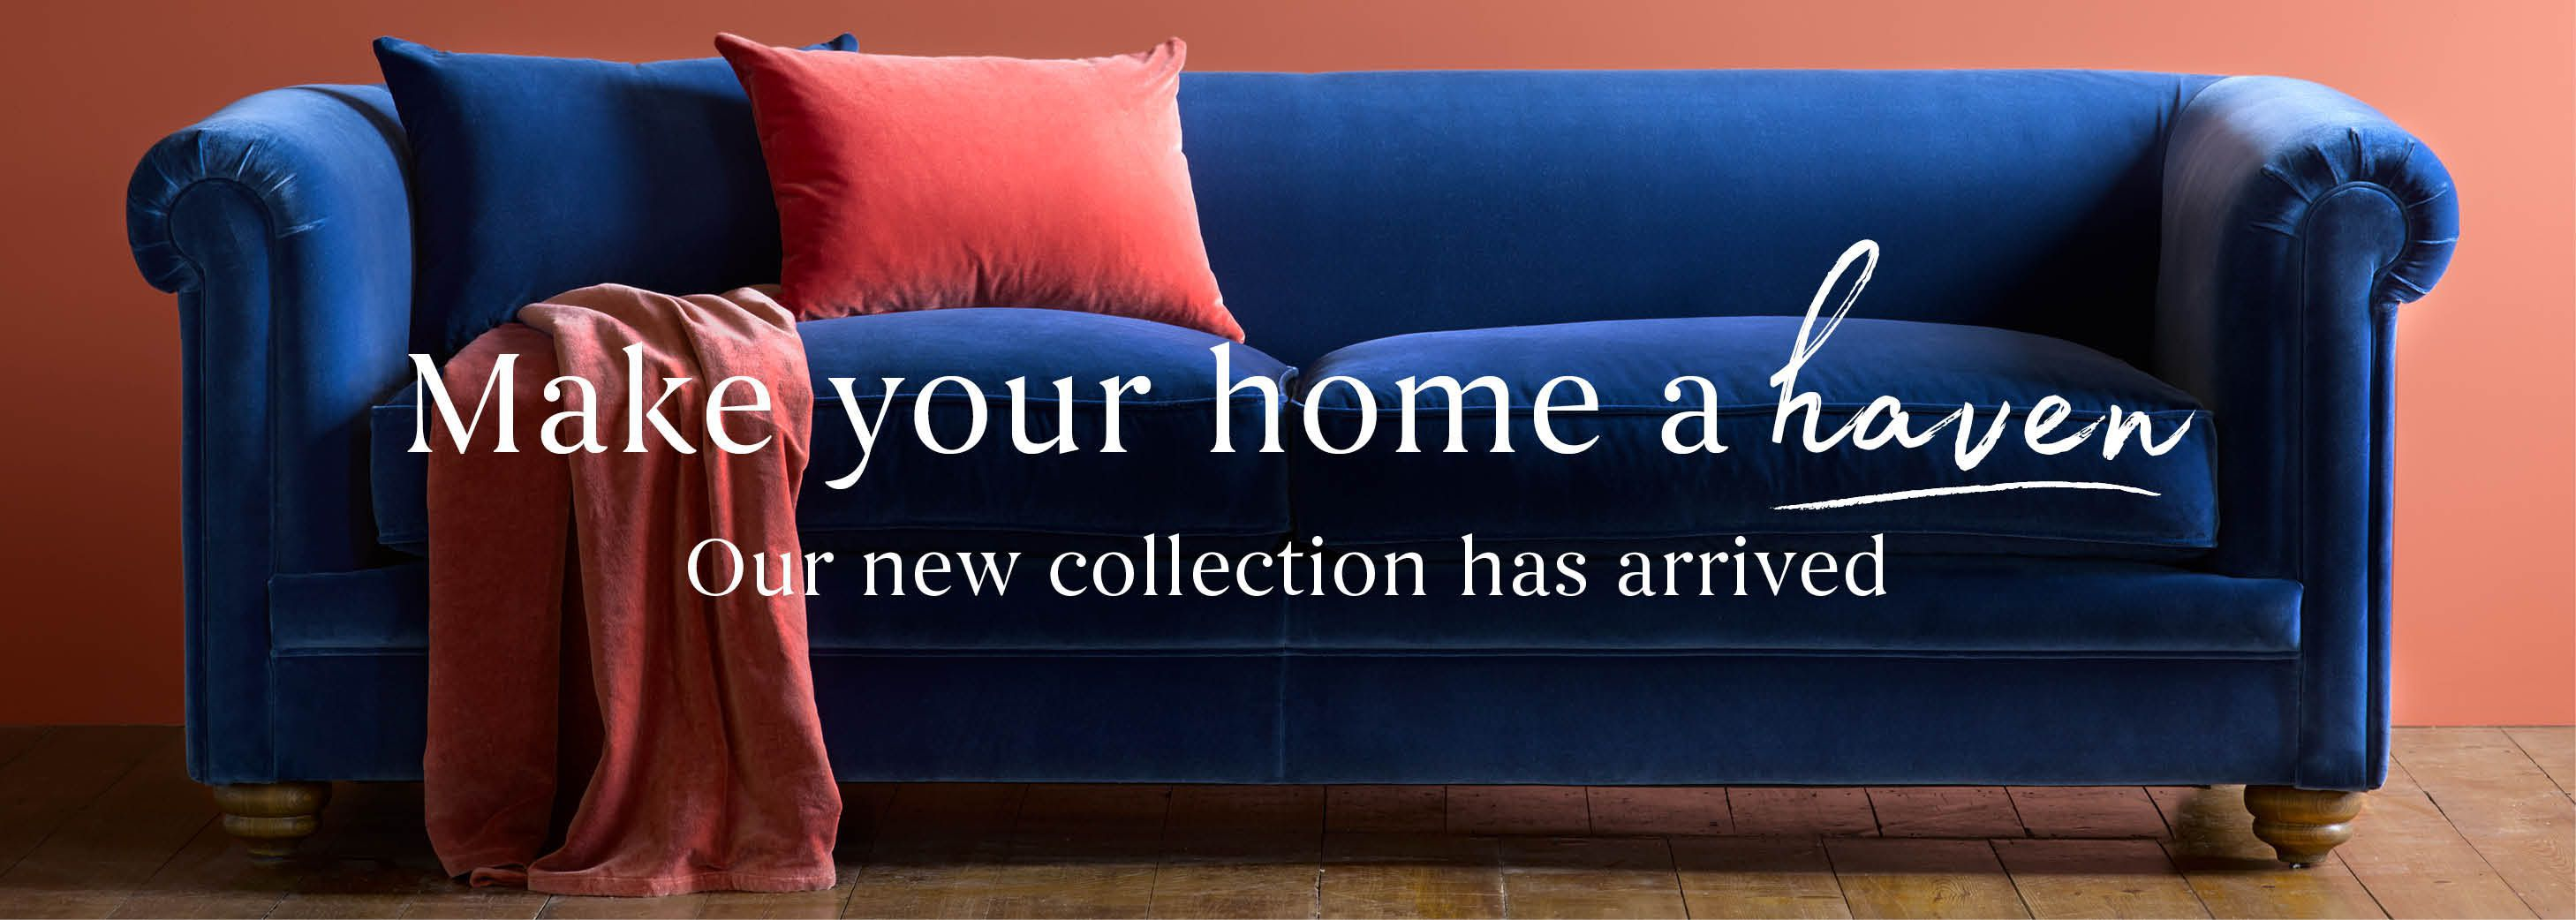 AW20 Collection - Make your home a haven